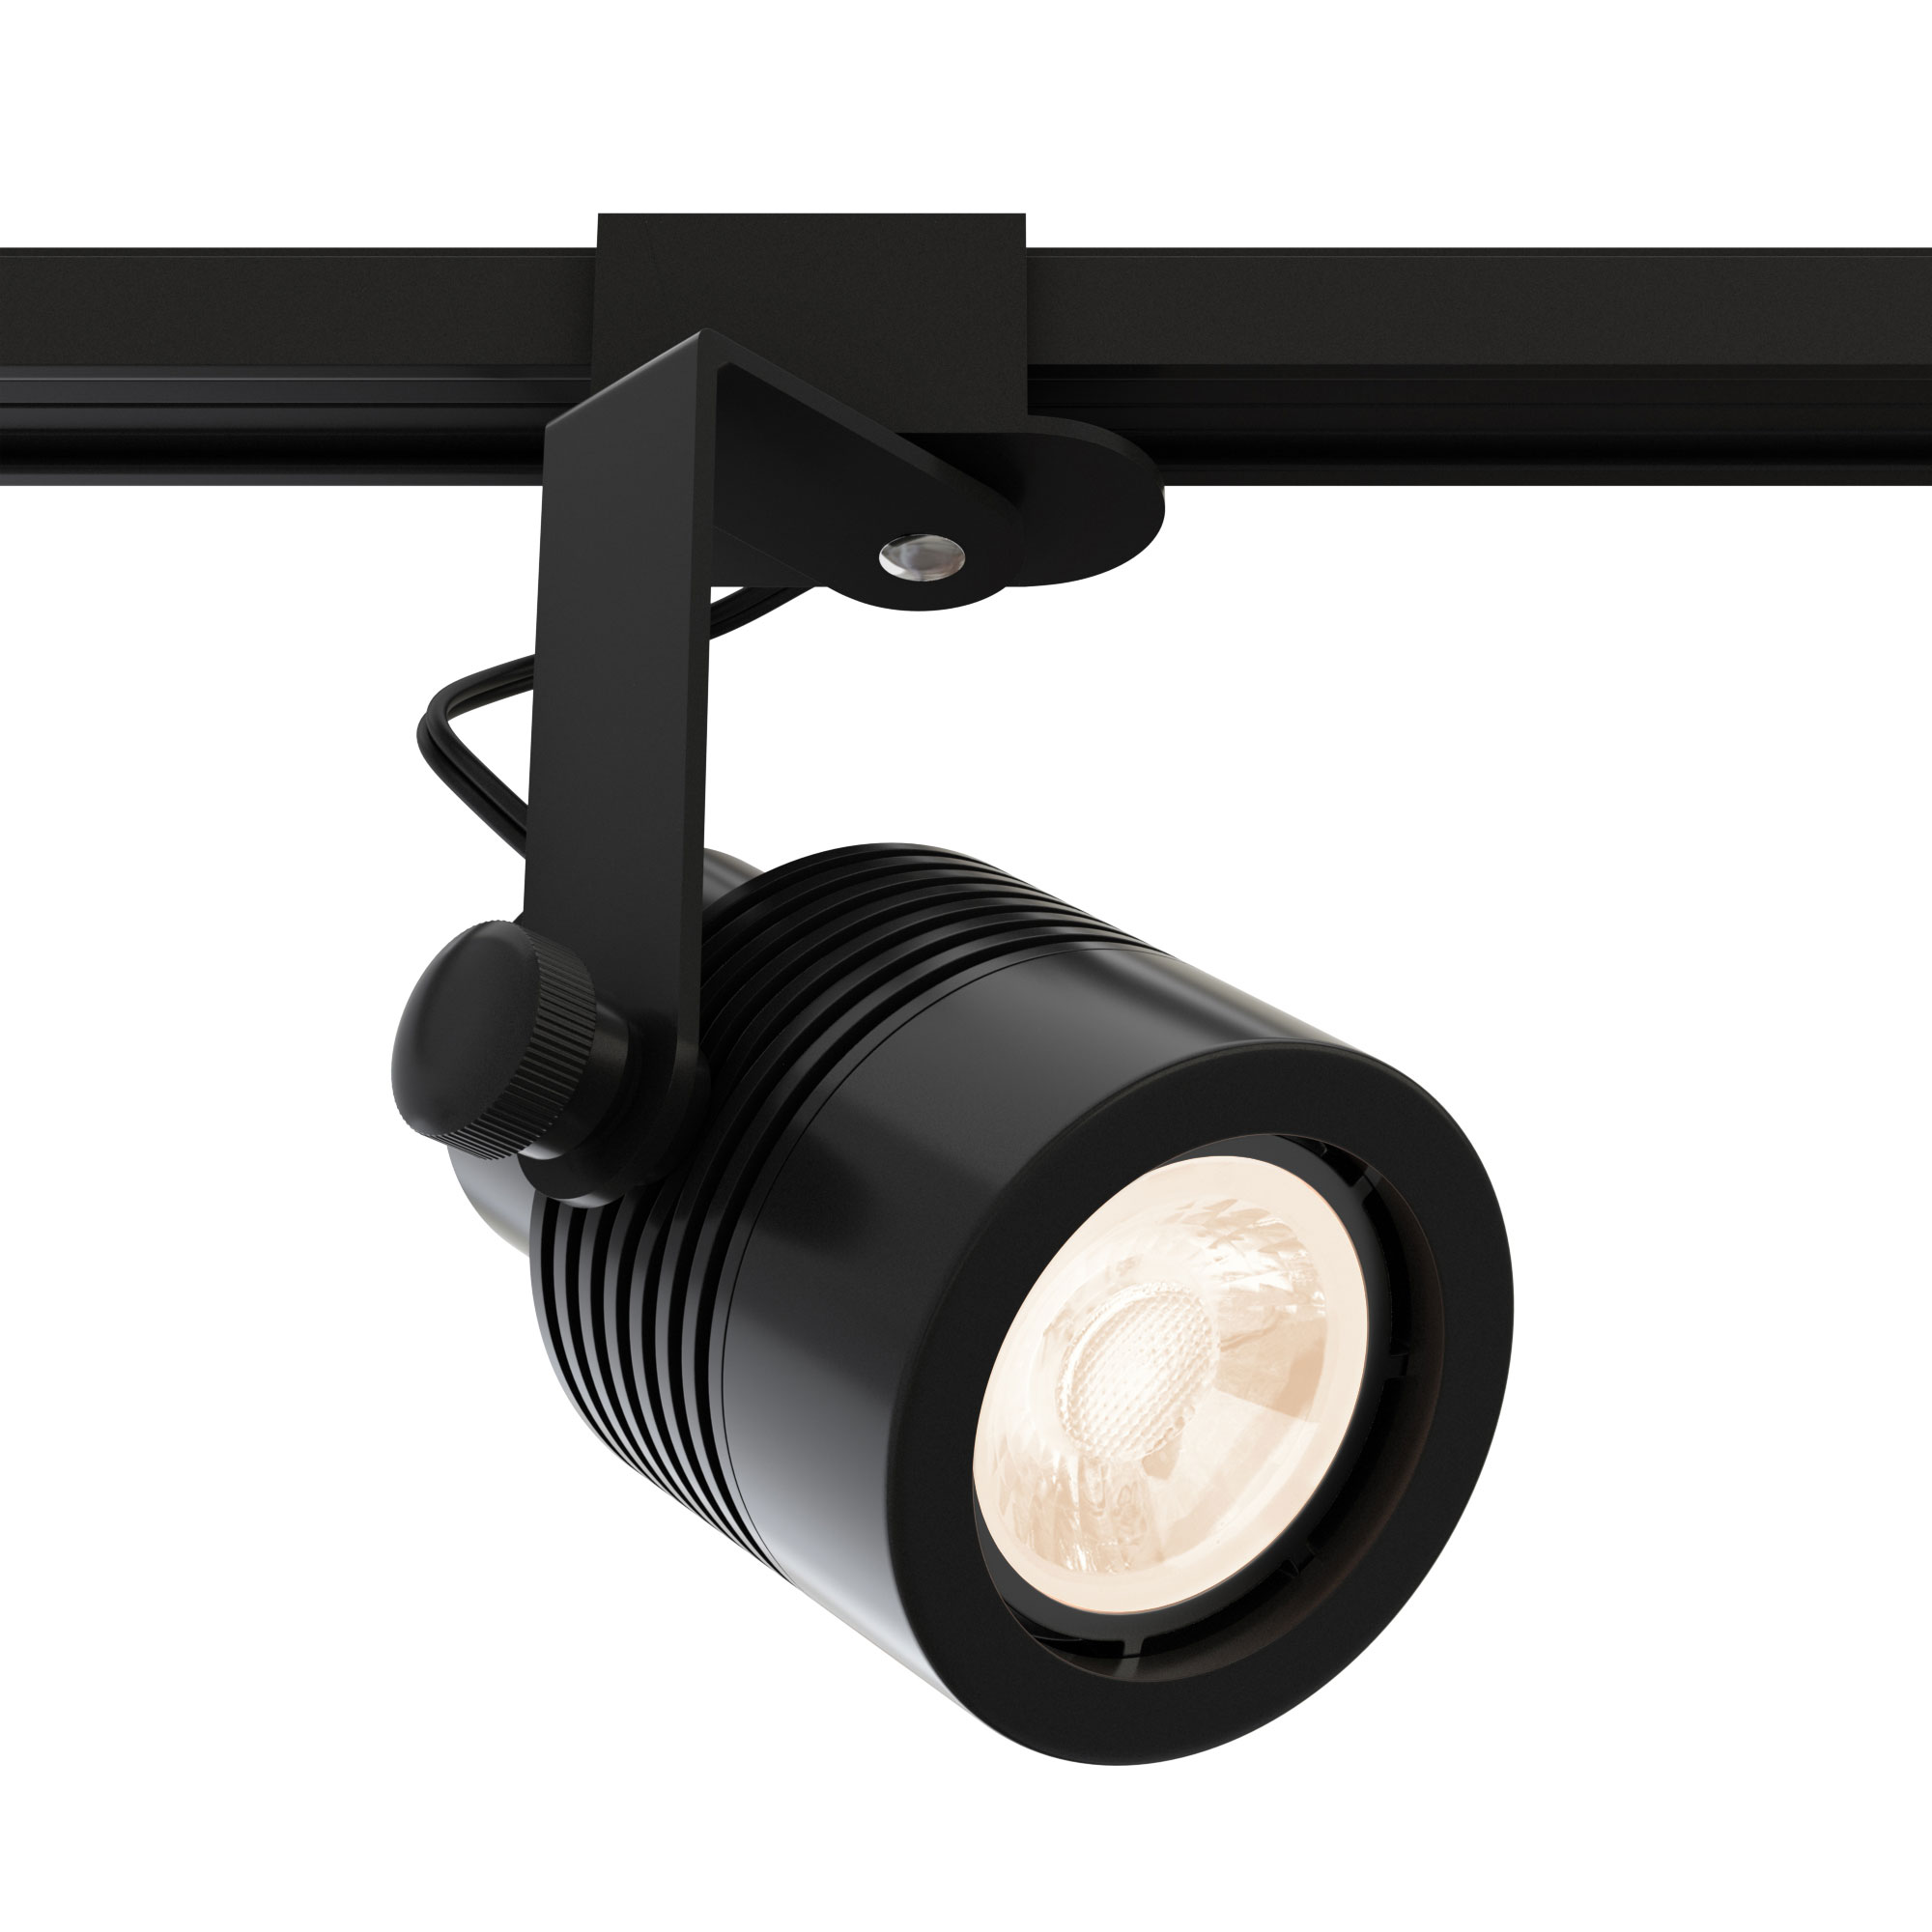 Wac Led Track Lighting Fixtures Micro Outdoor Track Light Mr16 12v By Pureedge Lighting